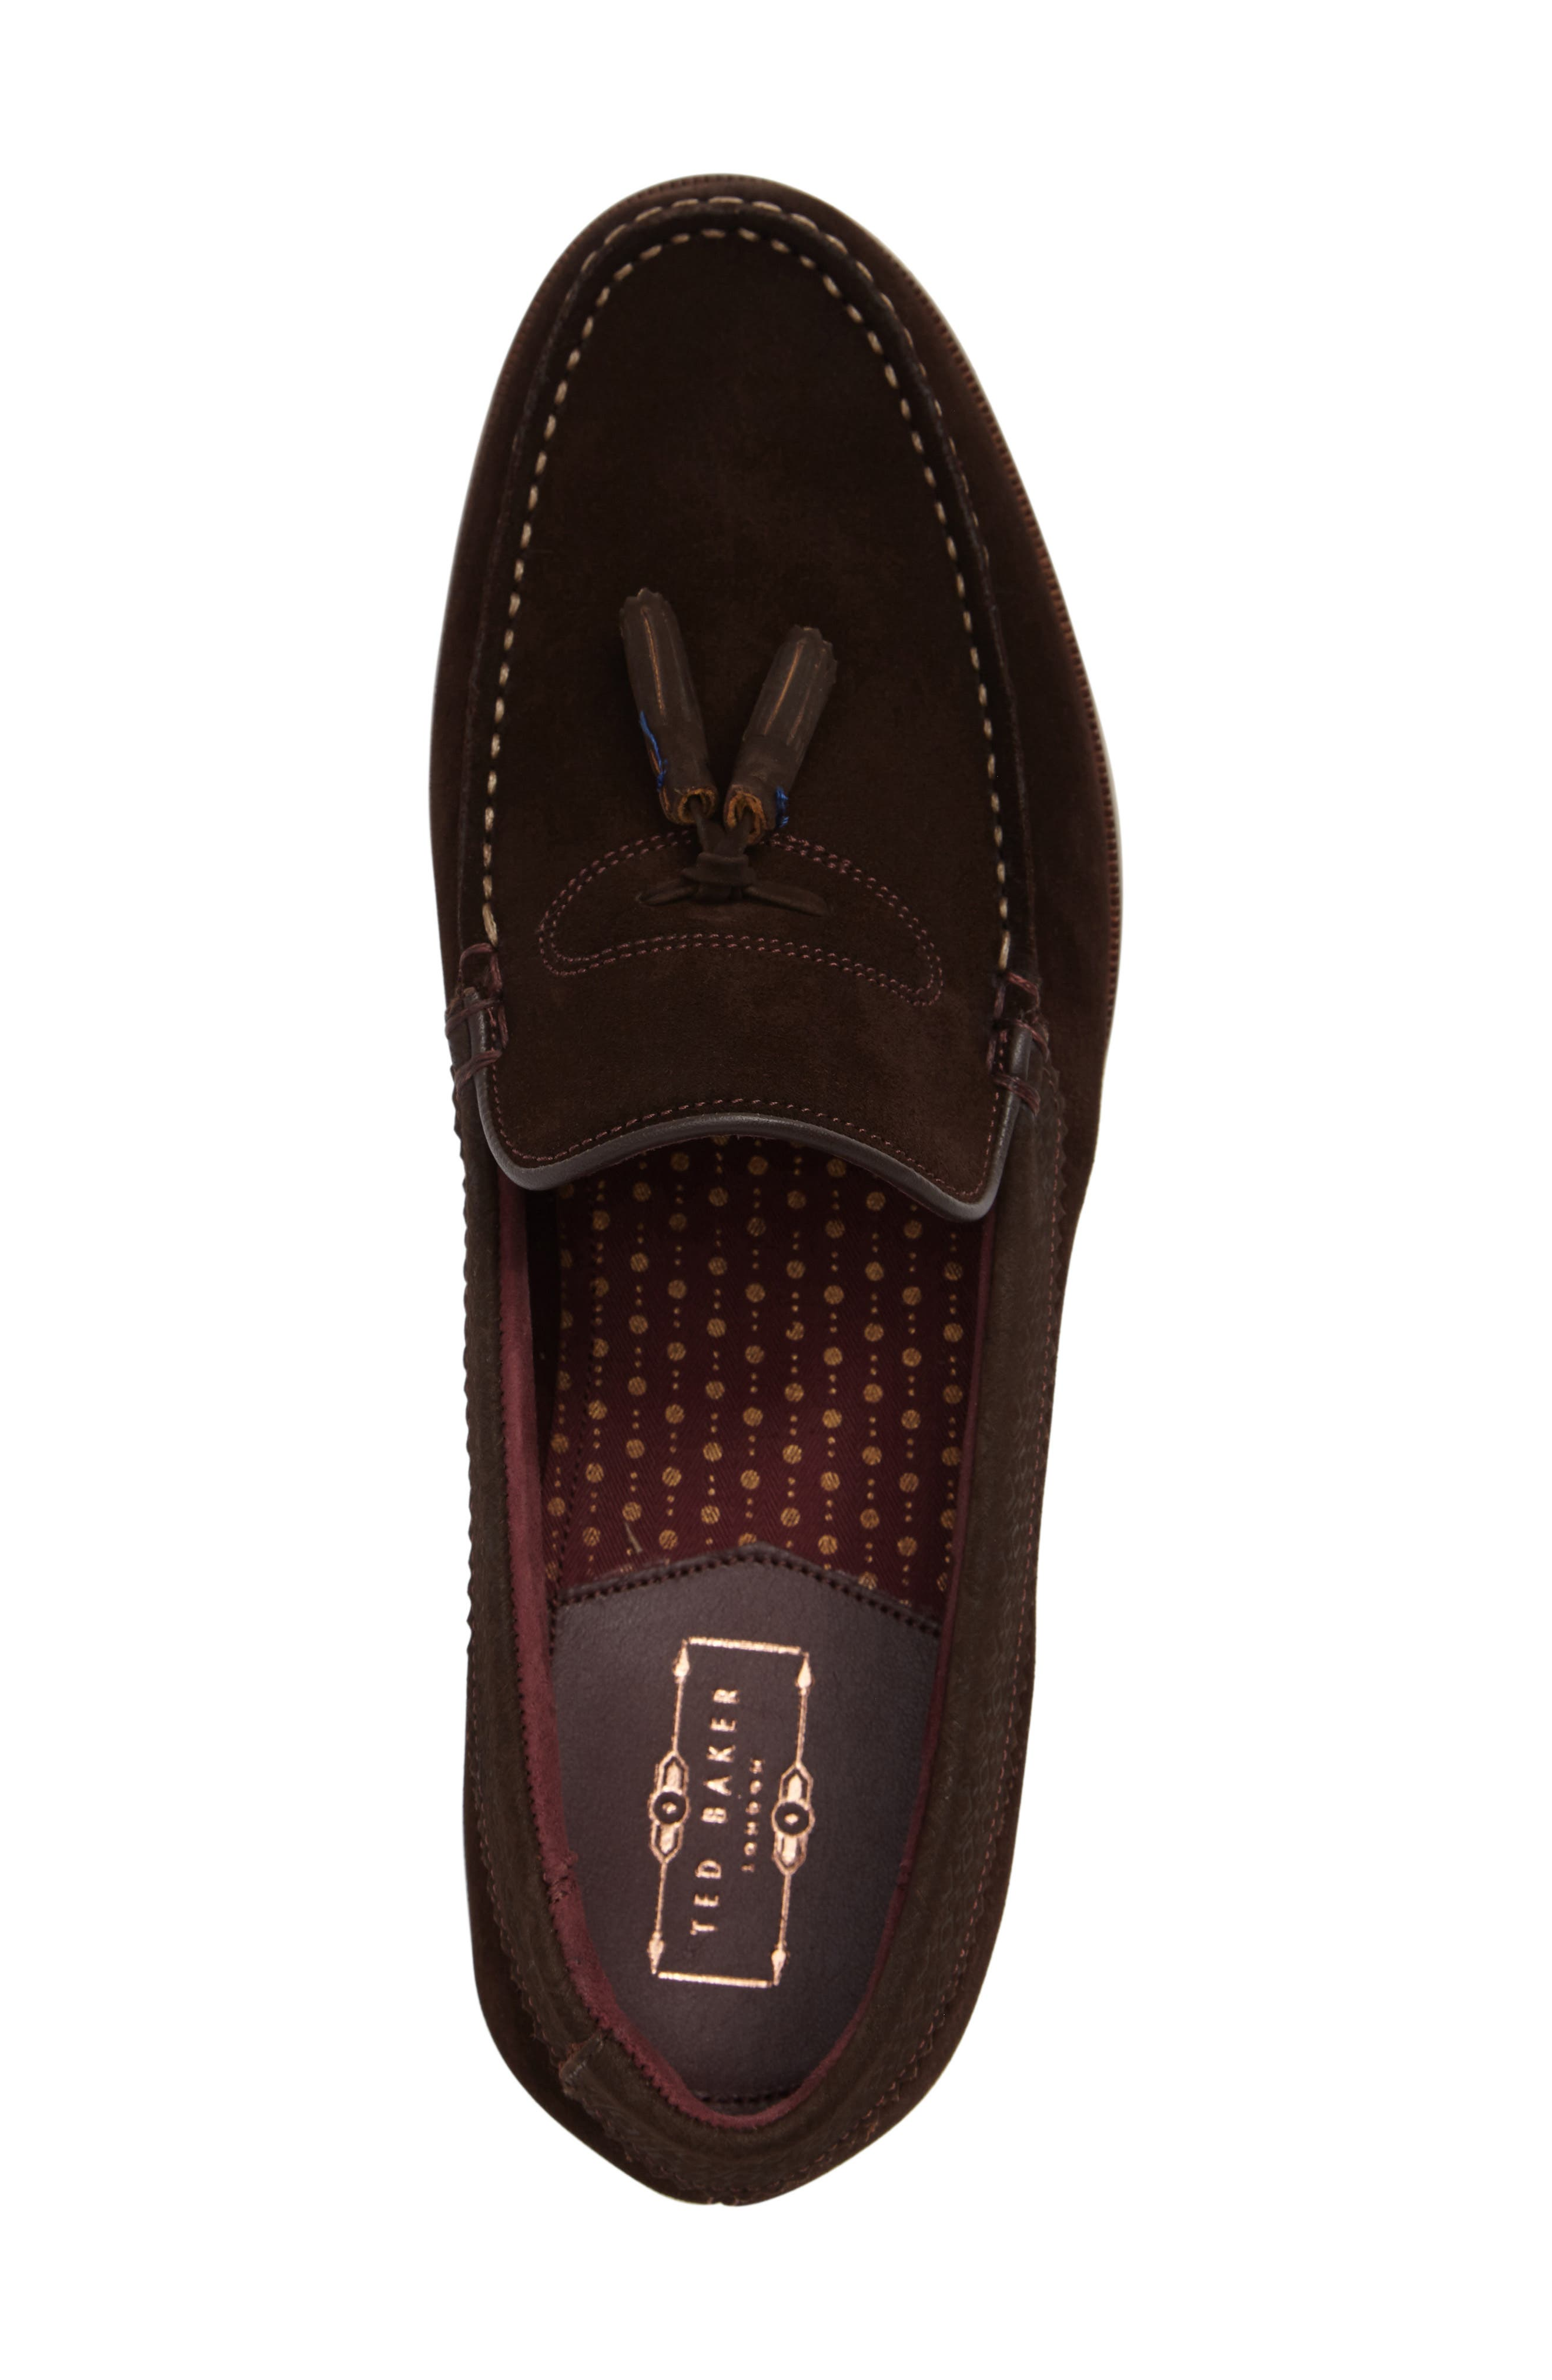 Dougge Tassel Loafer,                             Alternate thumbnail 15, color,